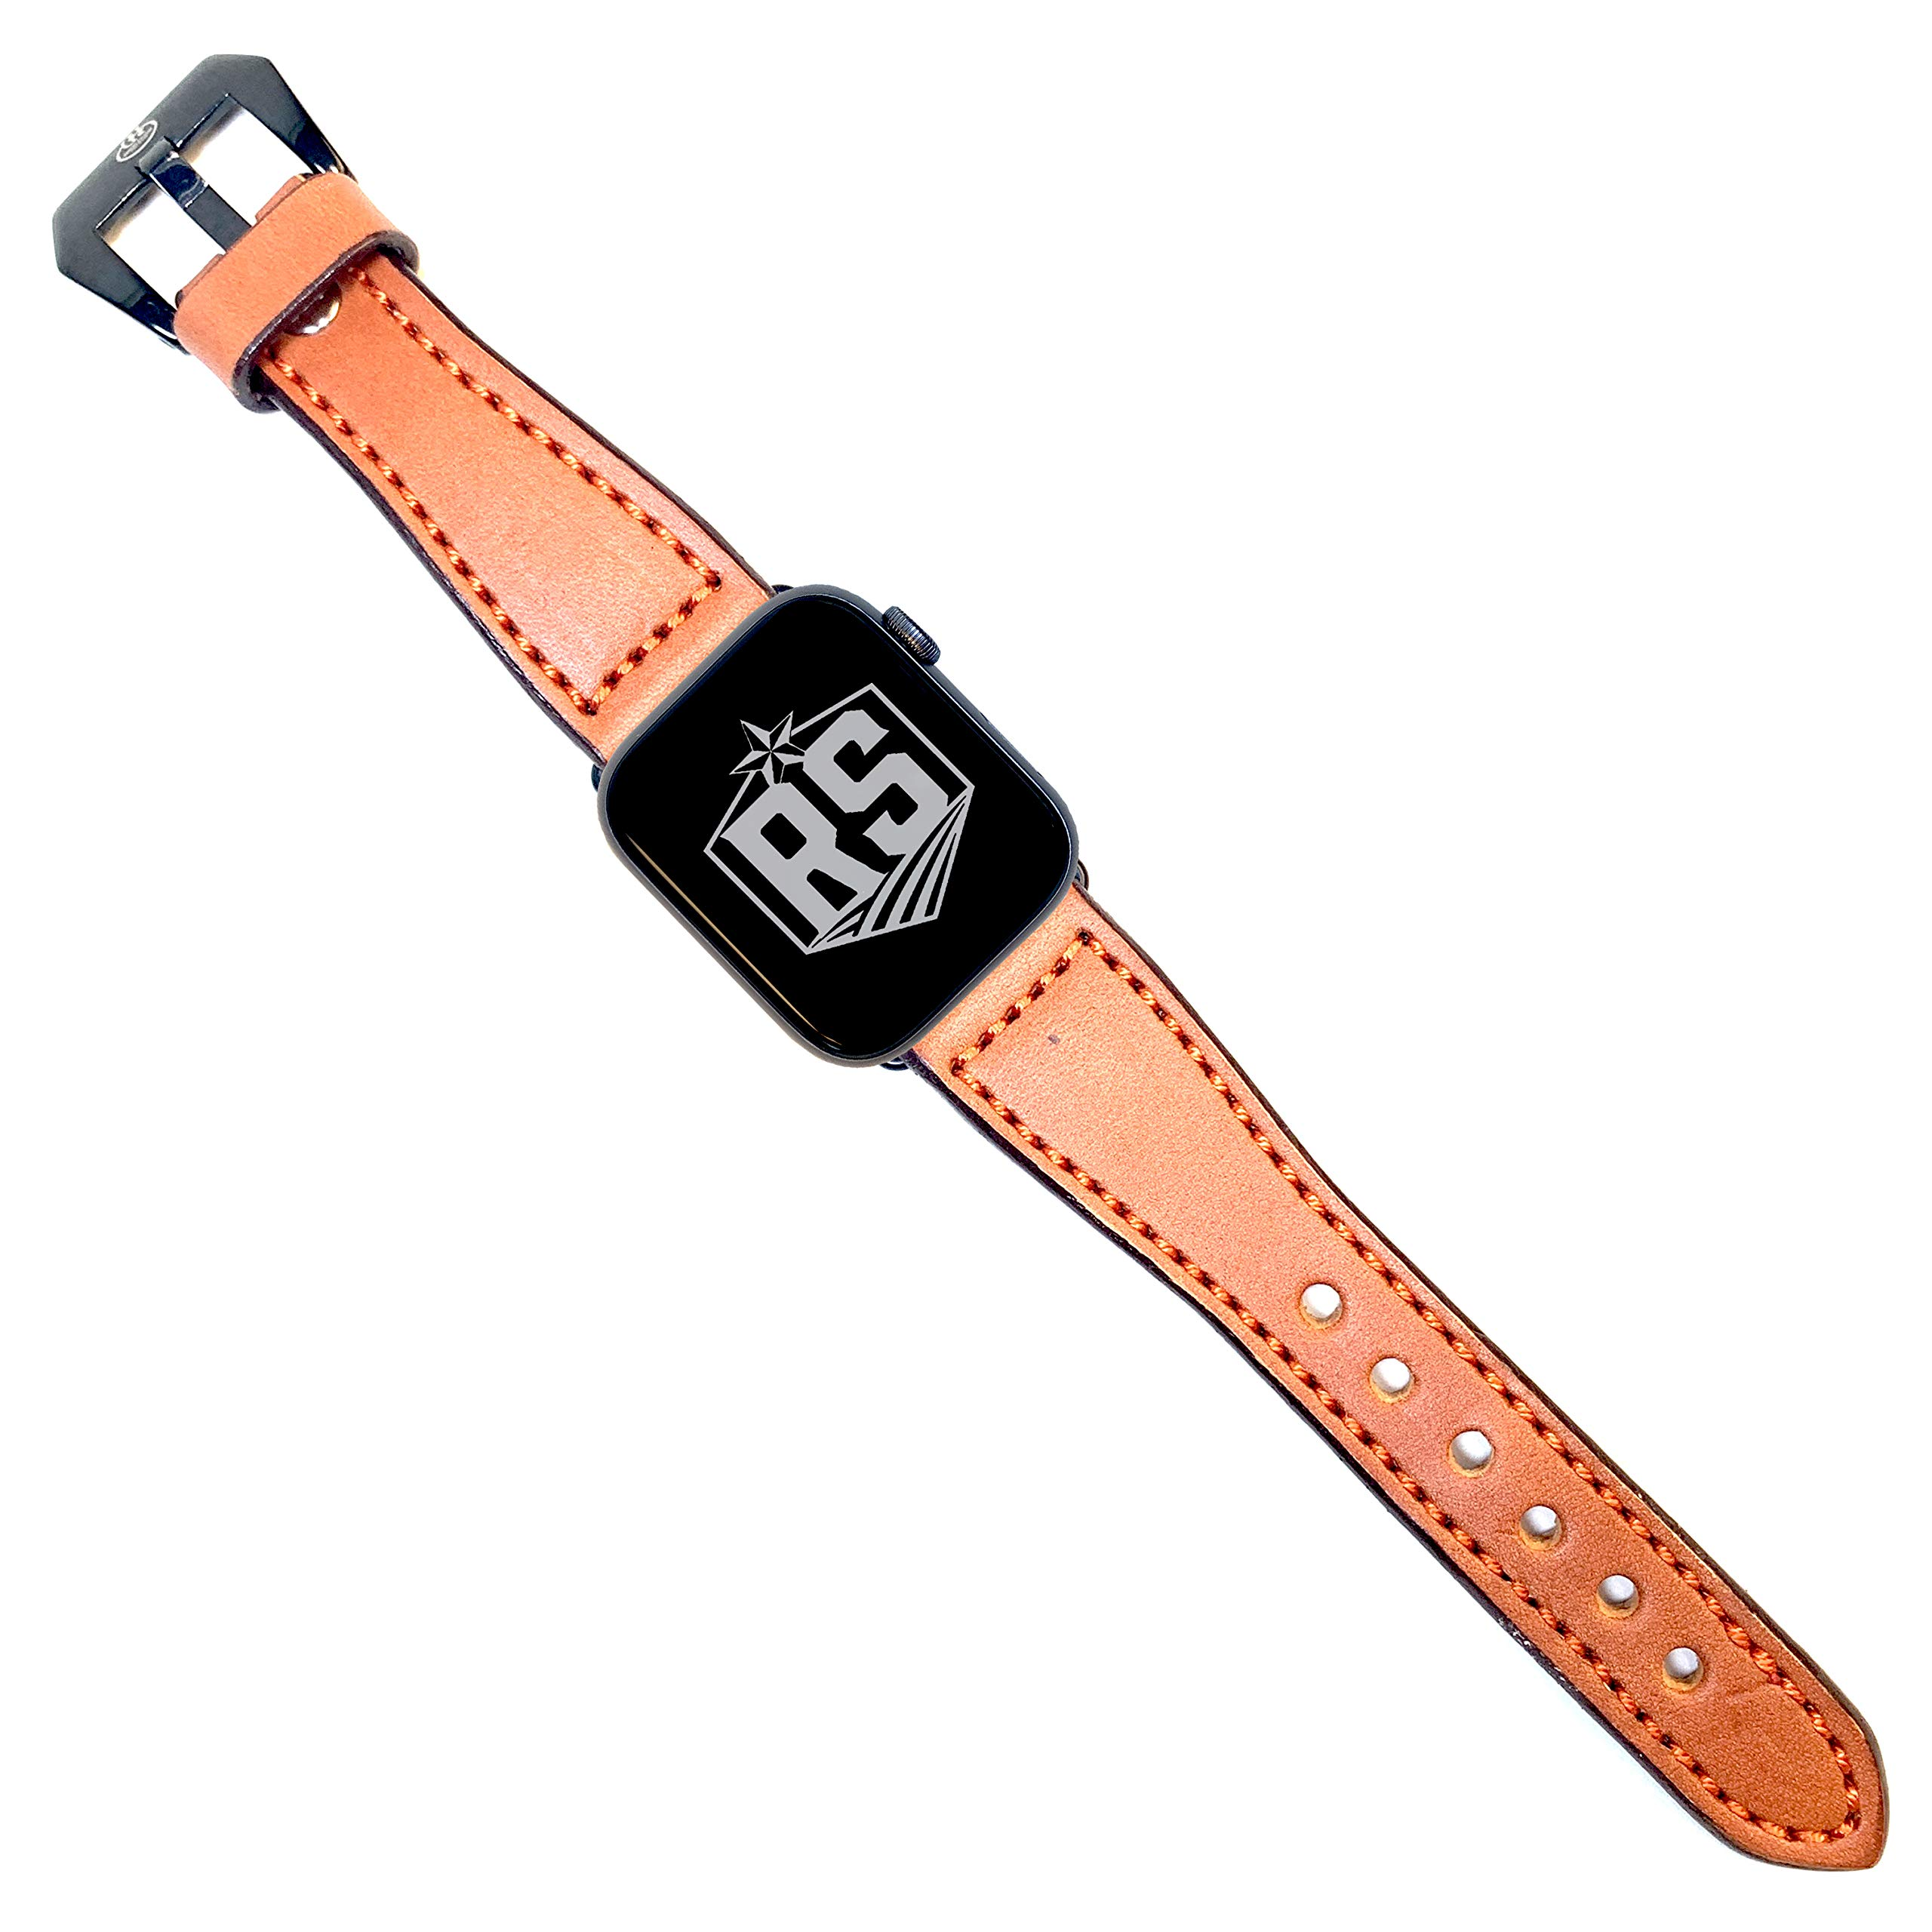 Rancher Supply English Bridle Watch Bands Compatible with Apple Watches | Tan Leather/Orange Stitching with Black Adapter and Buckle 42MM by Rancher Supply